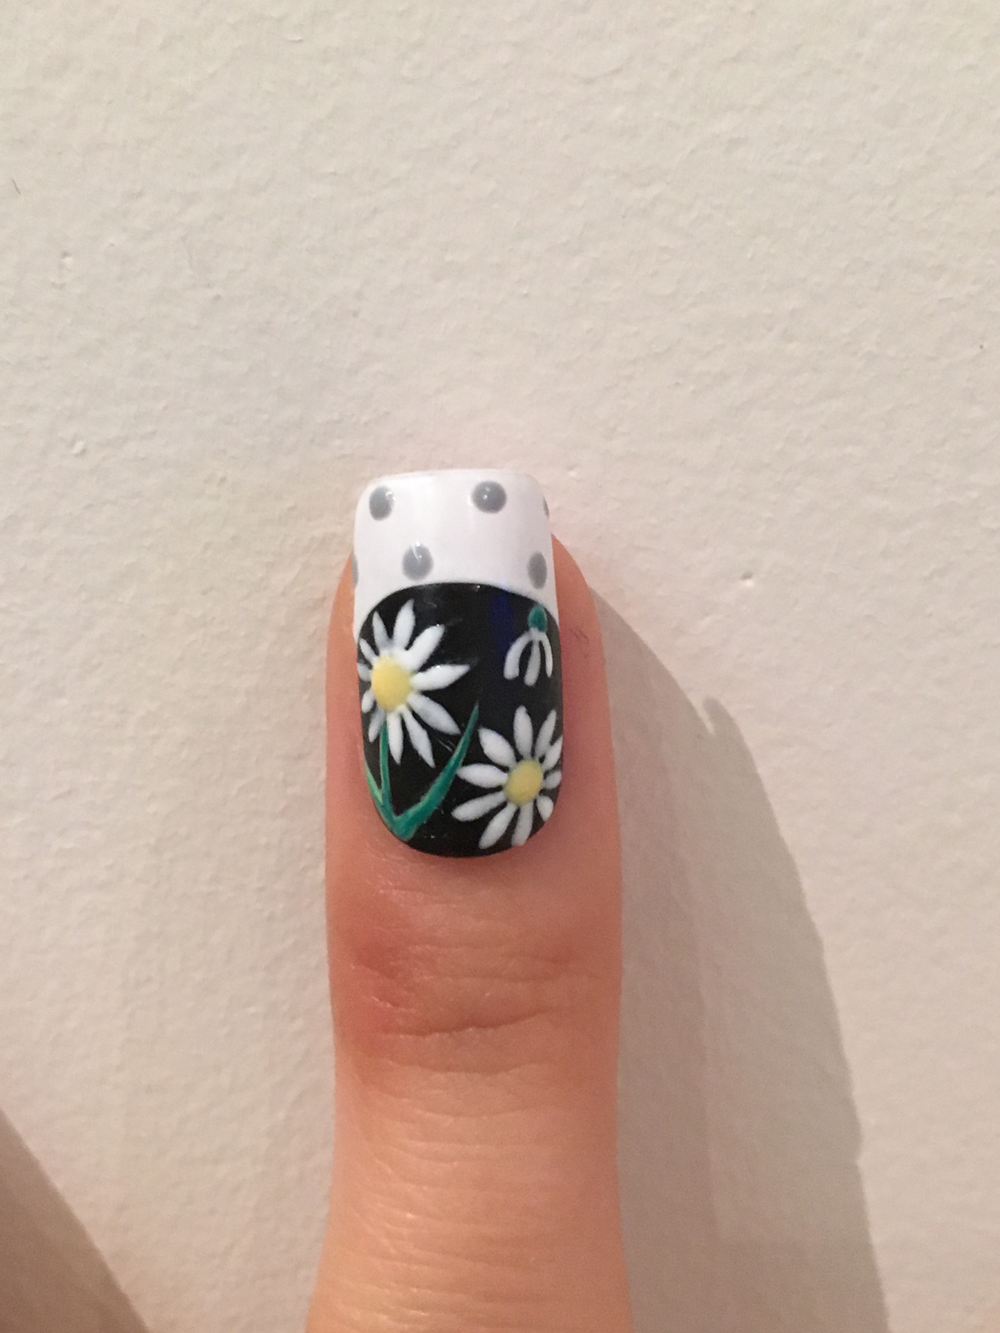 Add petals around yellow dots. Then add leaves. Draw gray dots on tip.